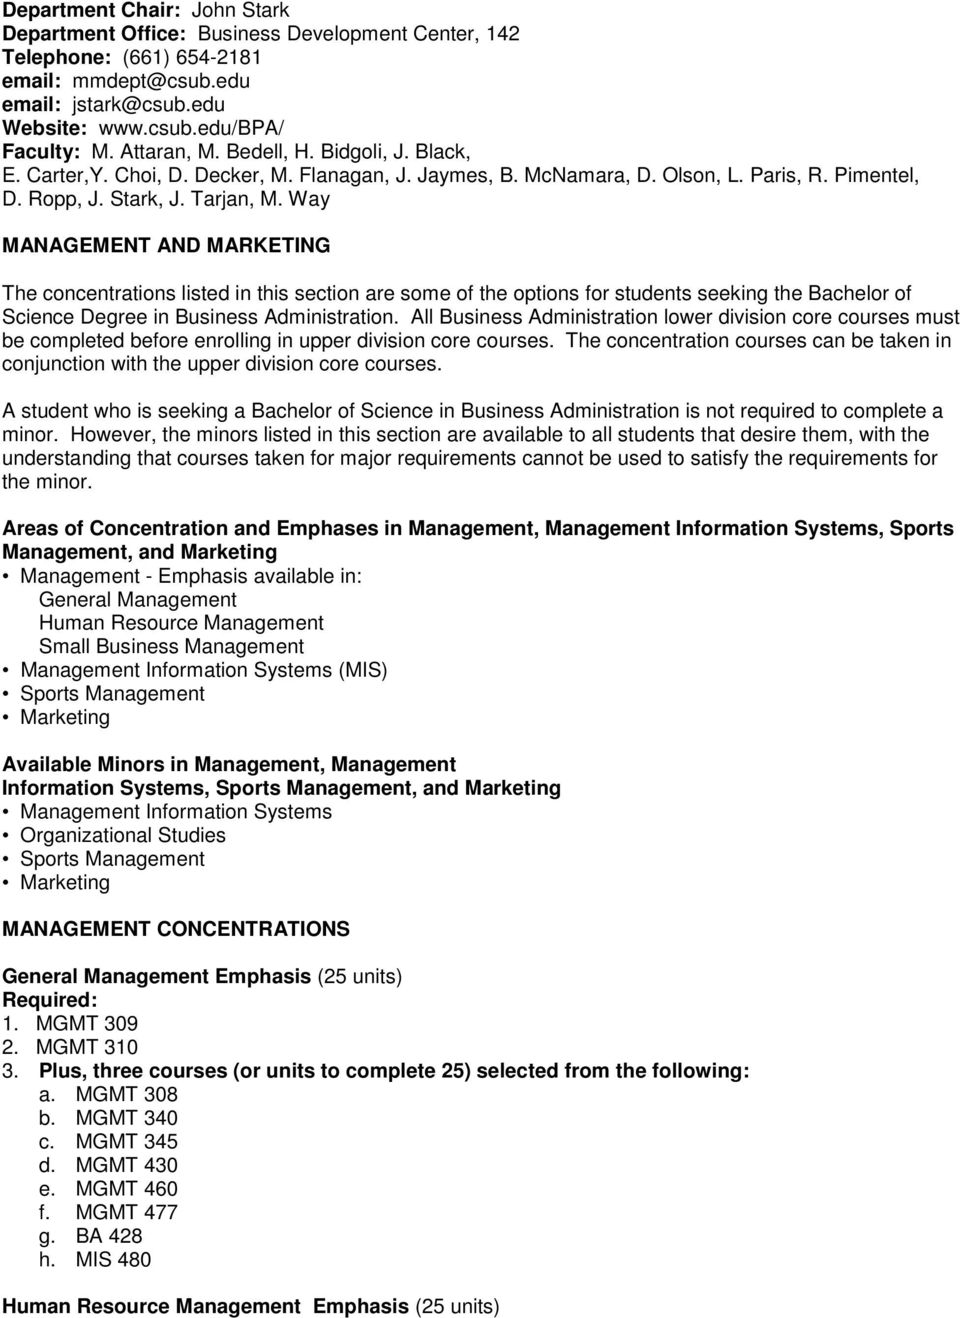 Management And Marketing Pdf